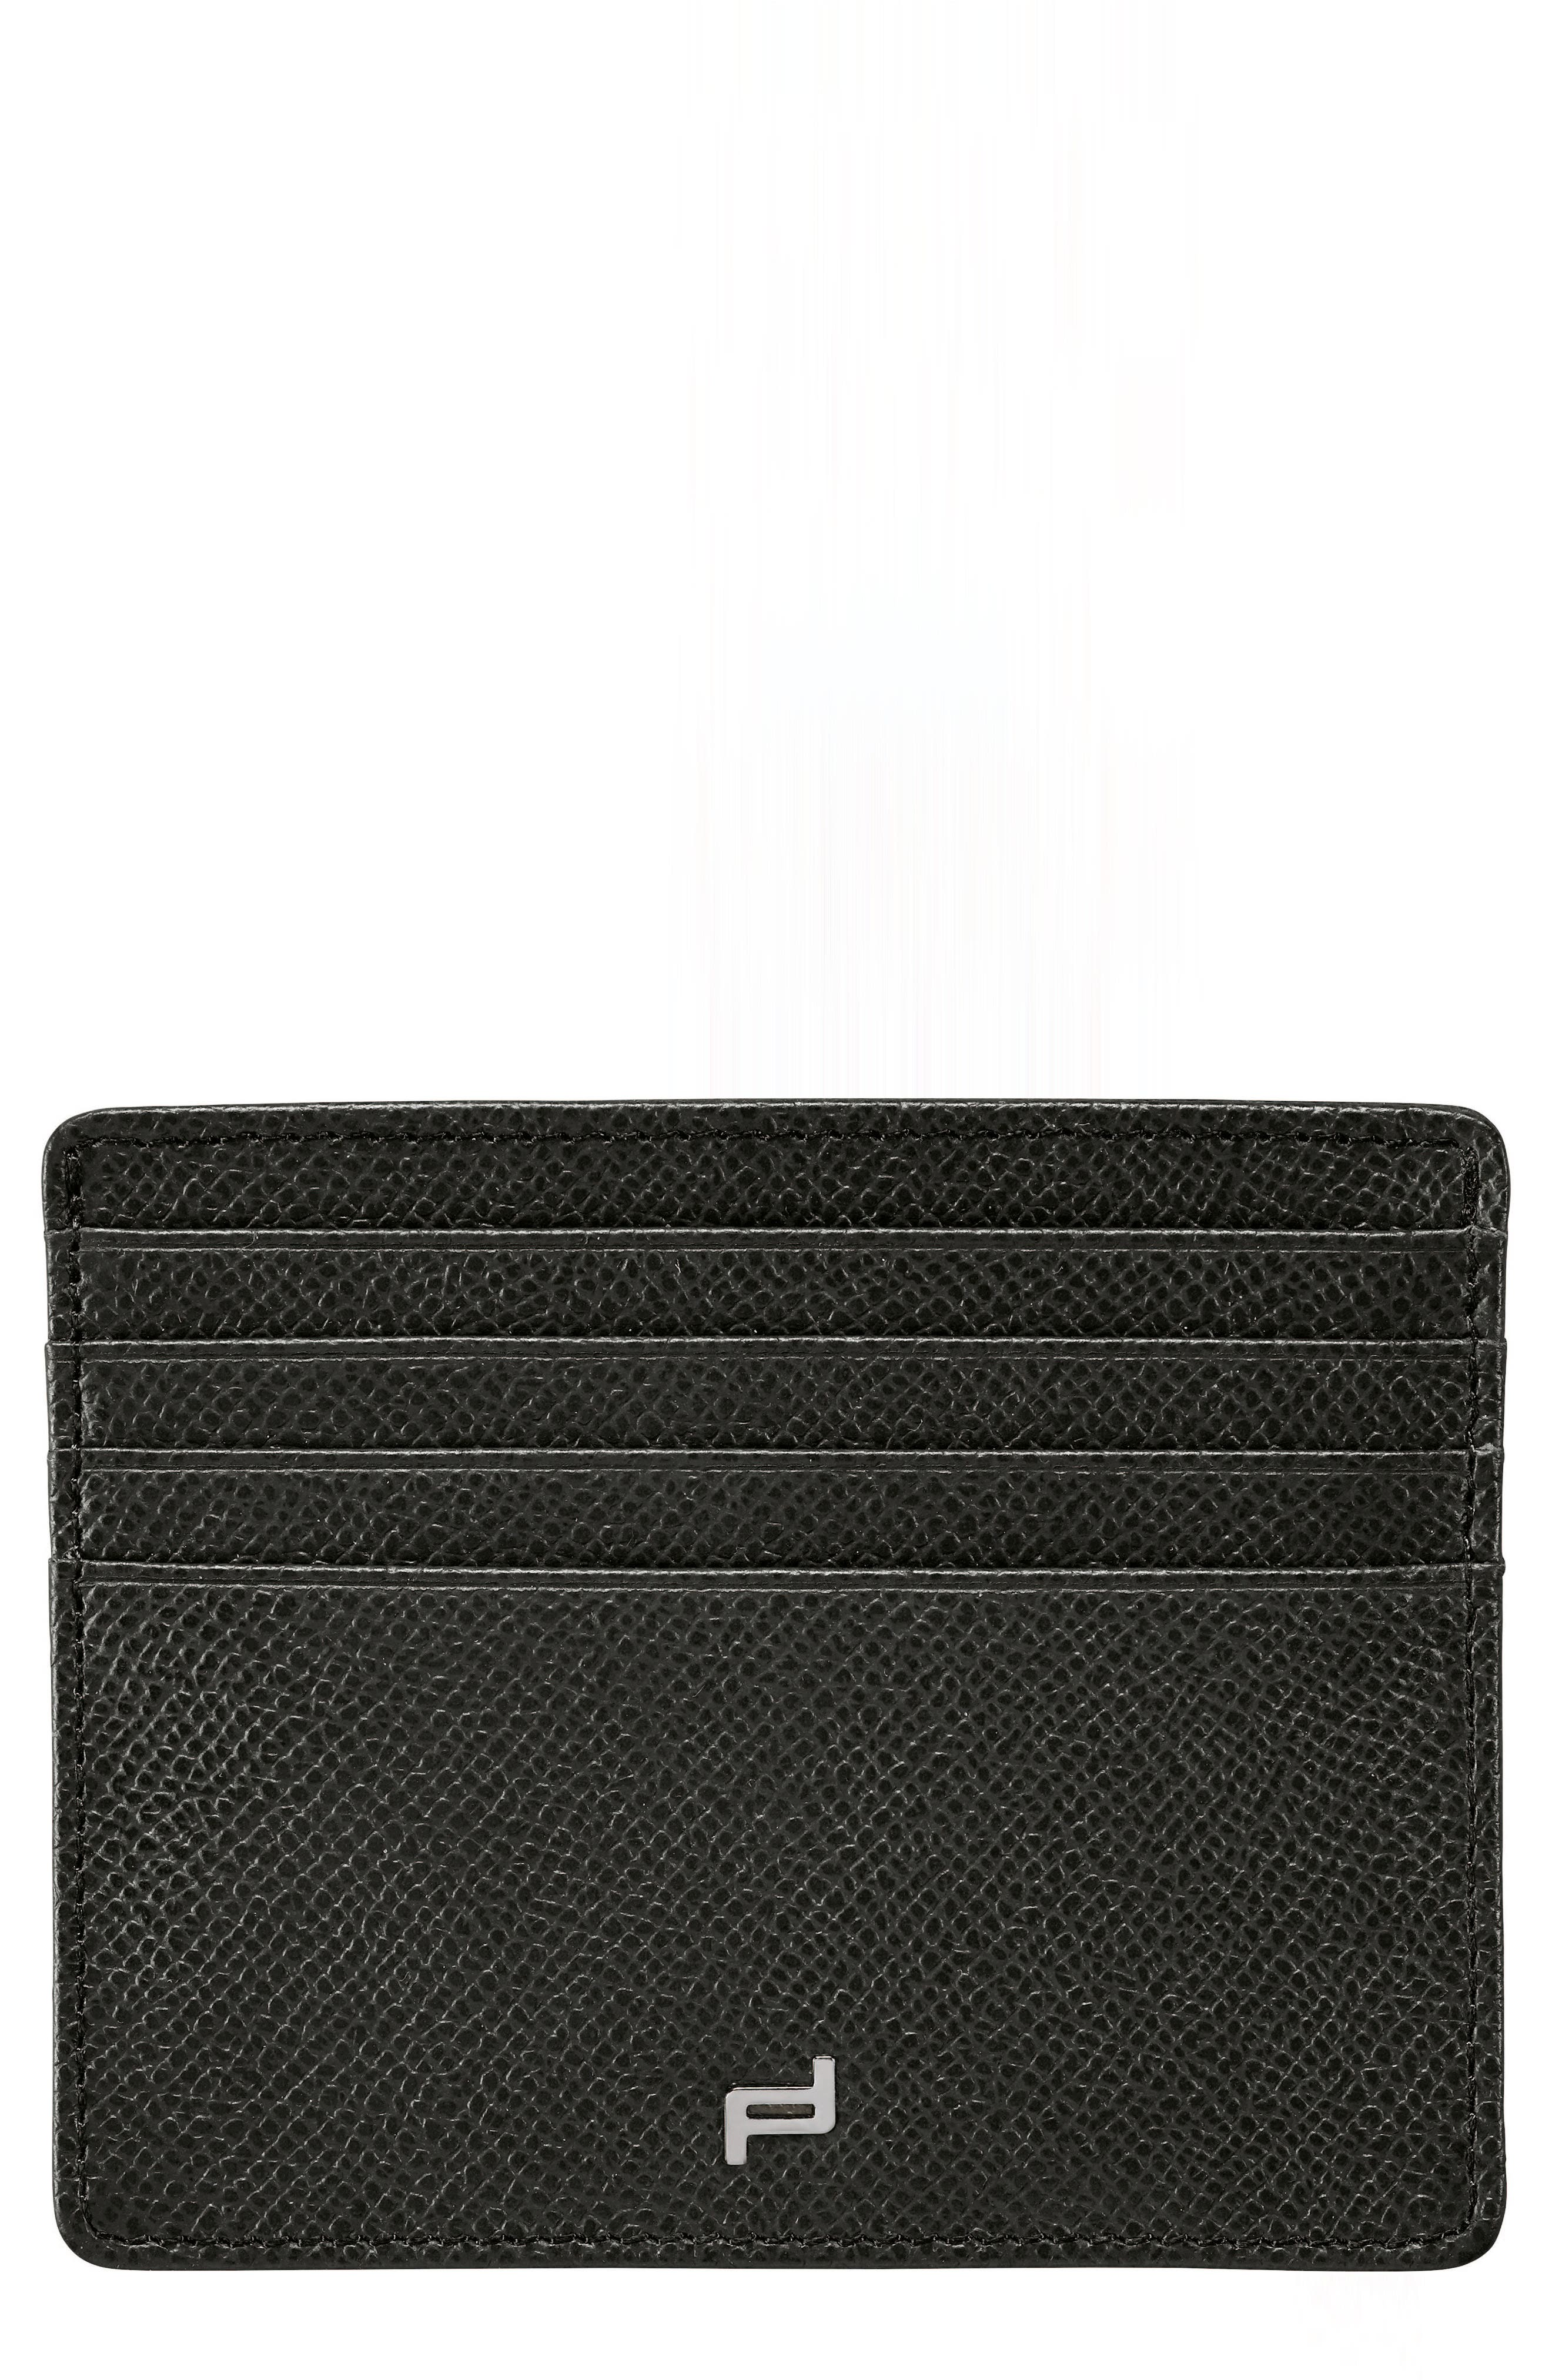 Main Image - Porsche Design French Classic 3.0 Leather Card Case